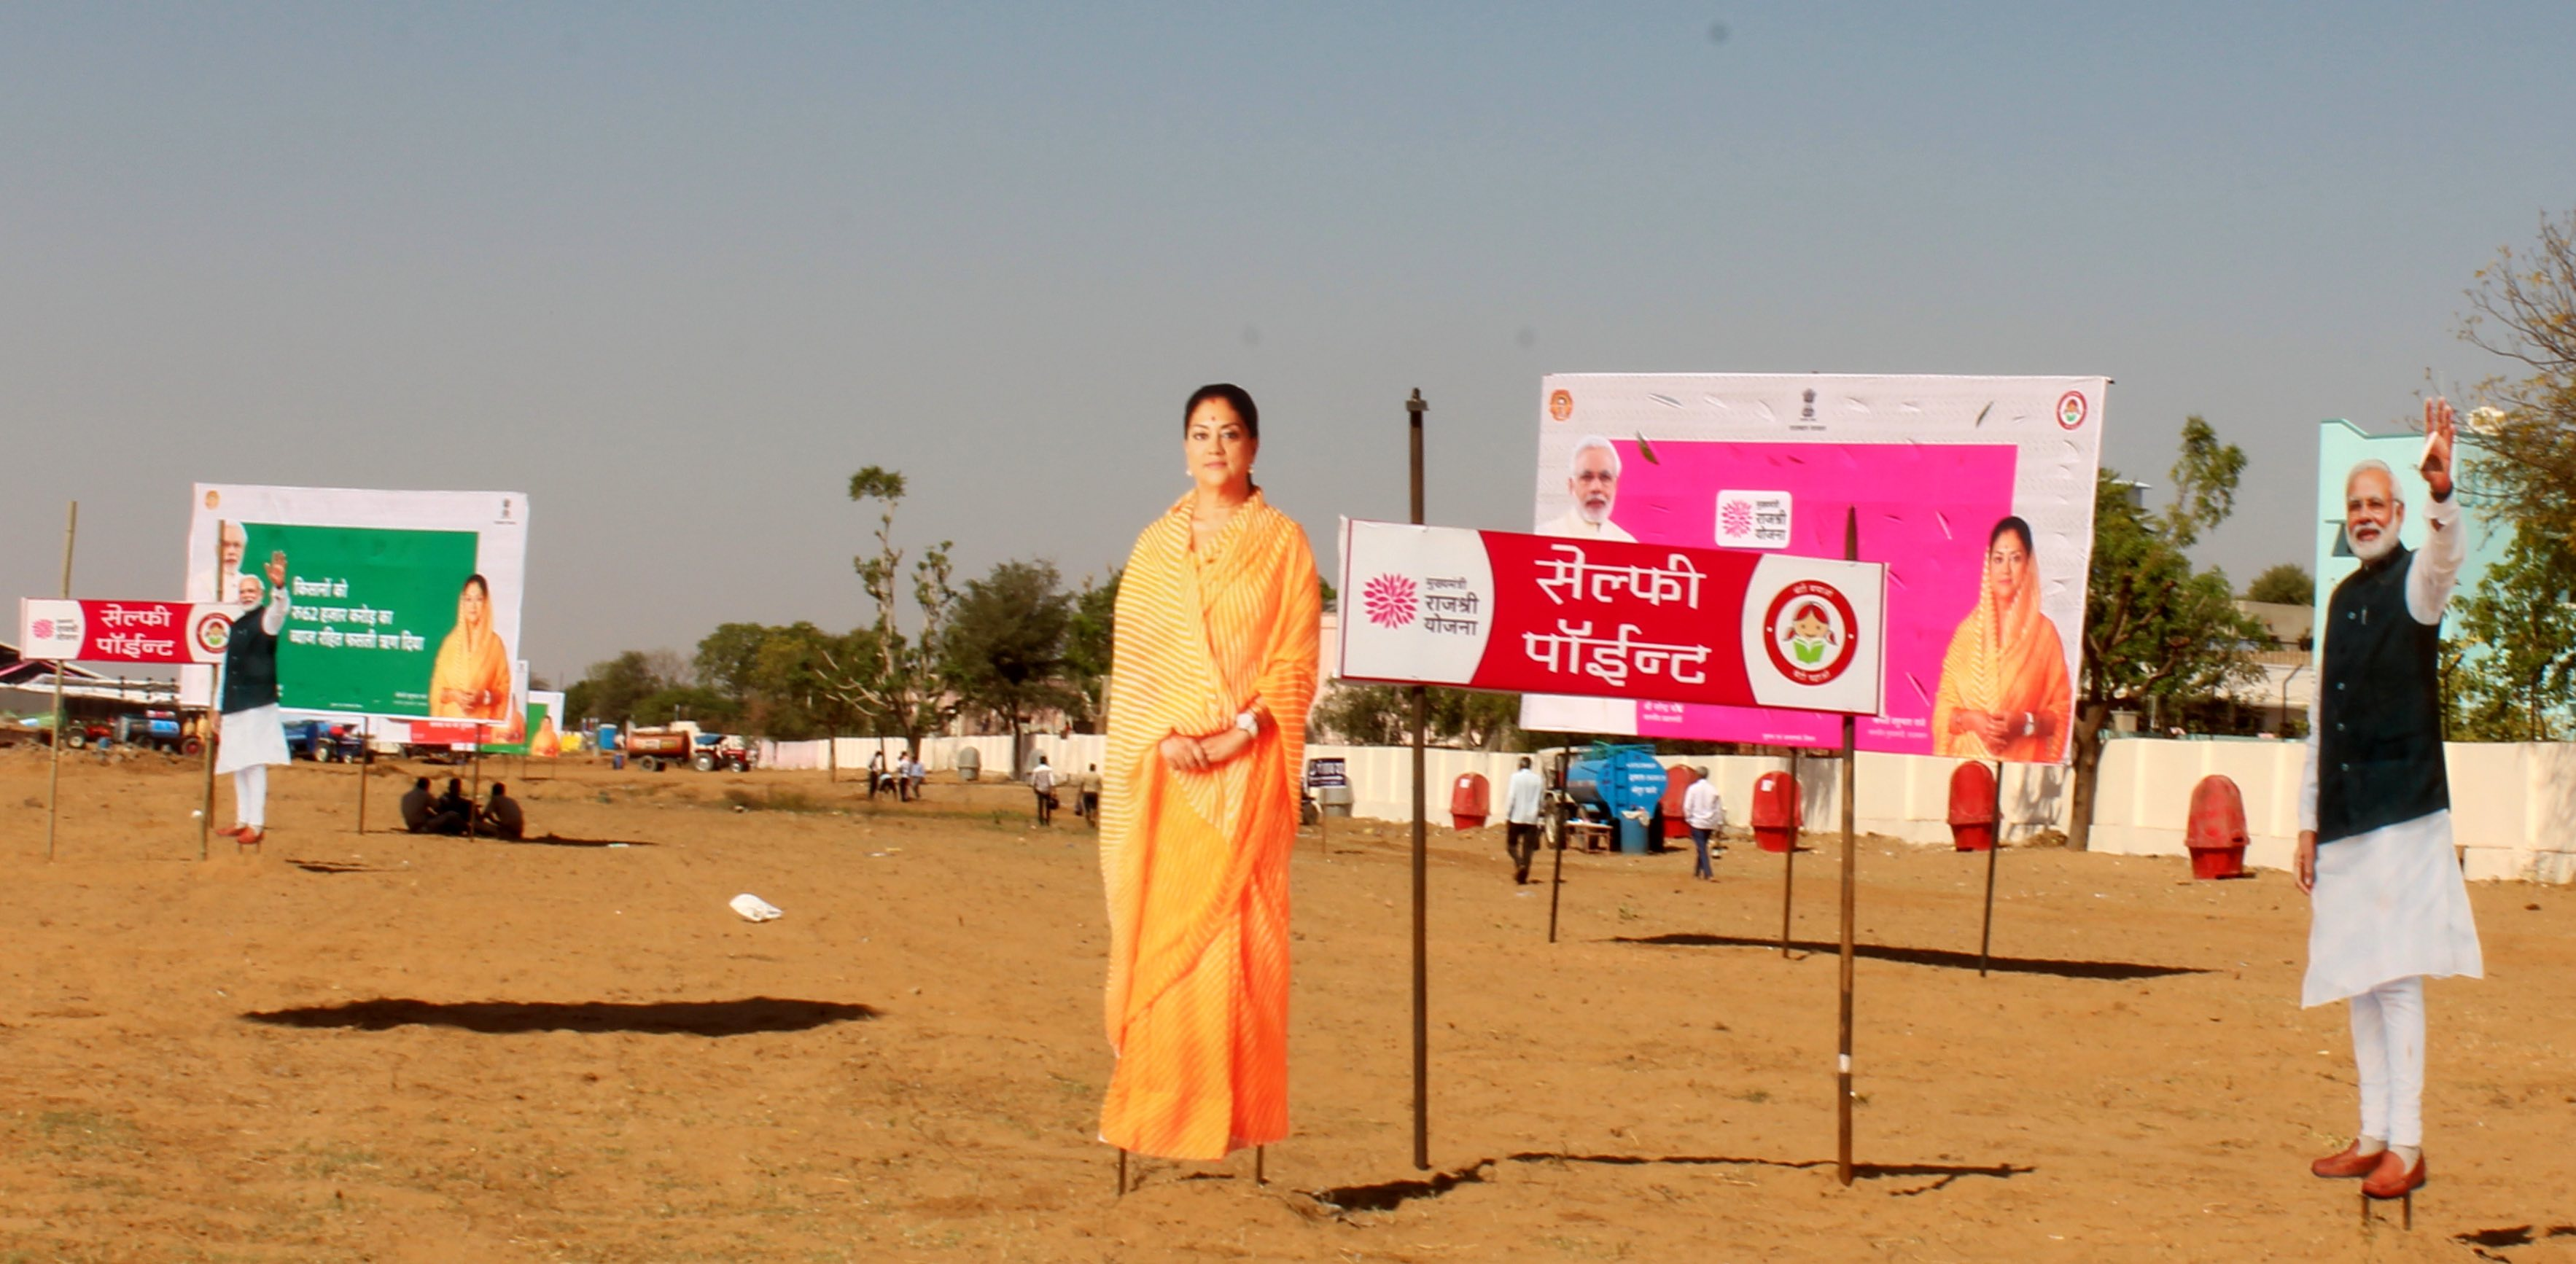 No Water or Working Toilets at Modi's Rajasthan Event But Lots of 'Selfie Points'